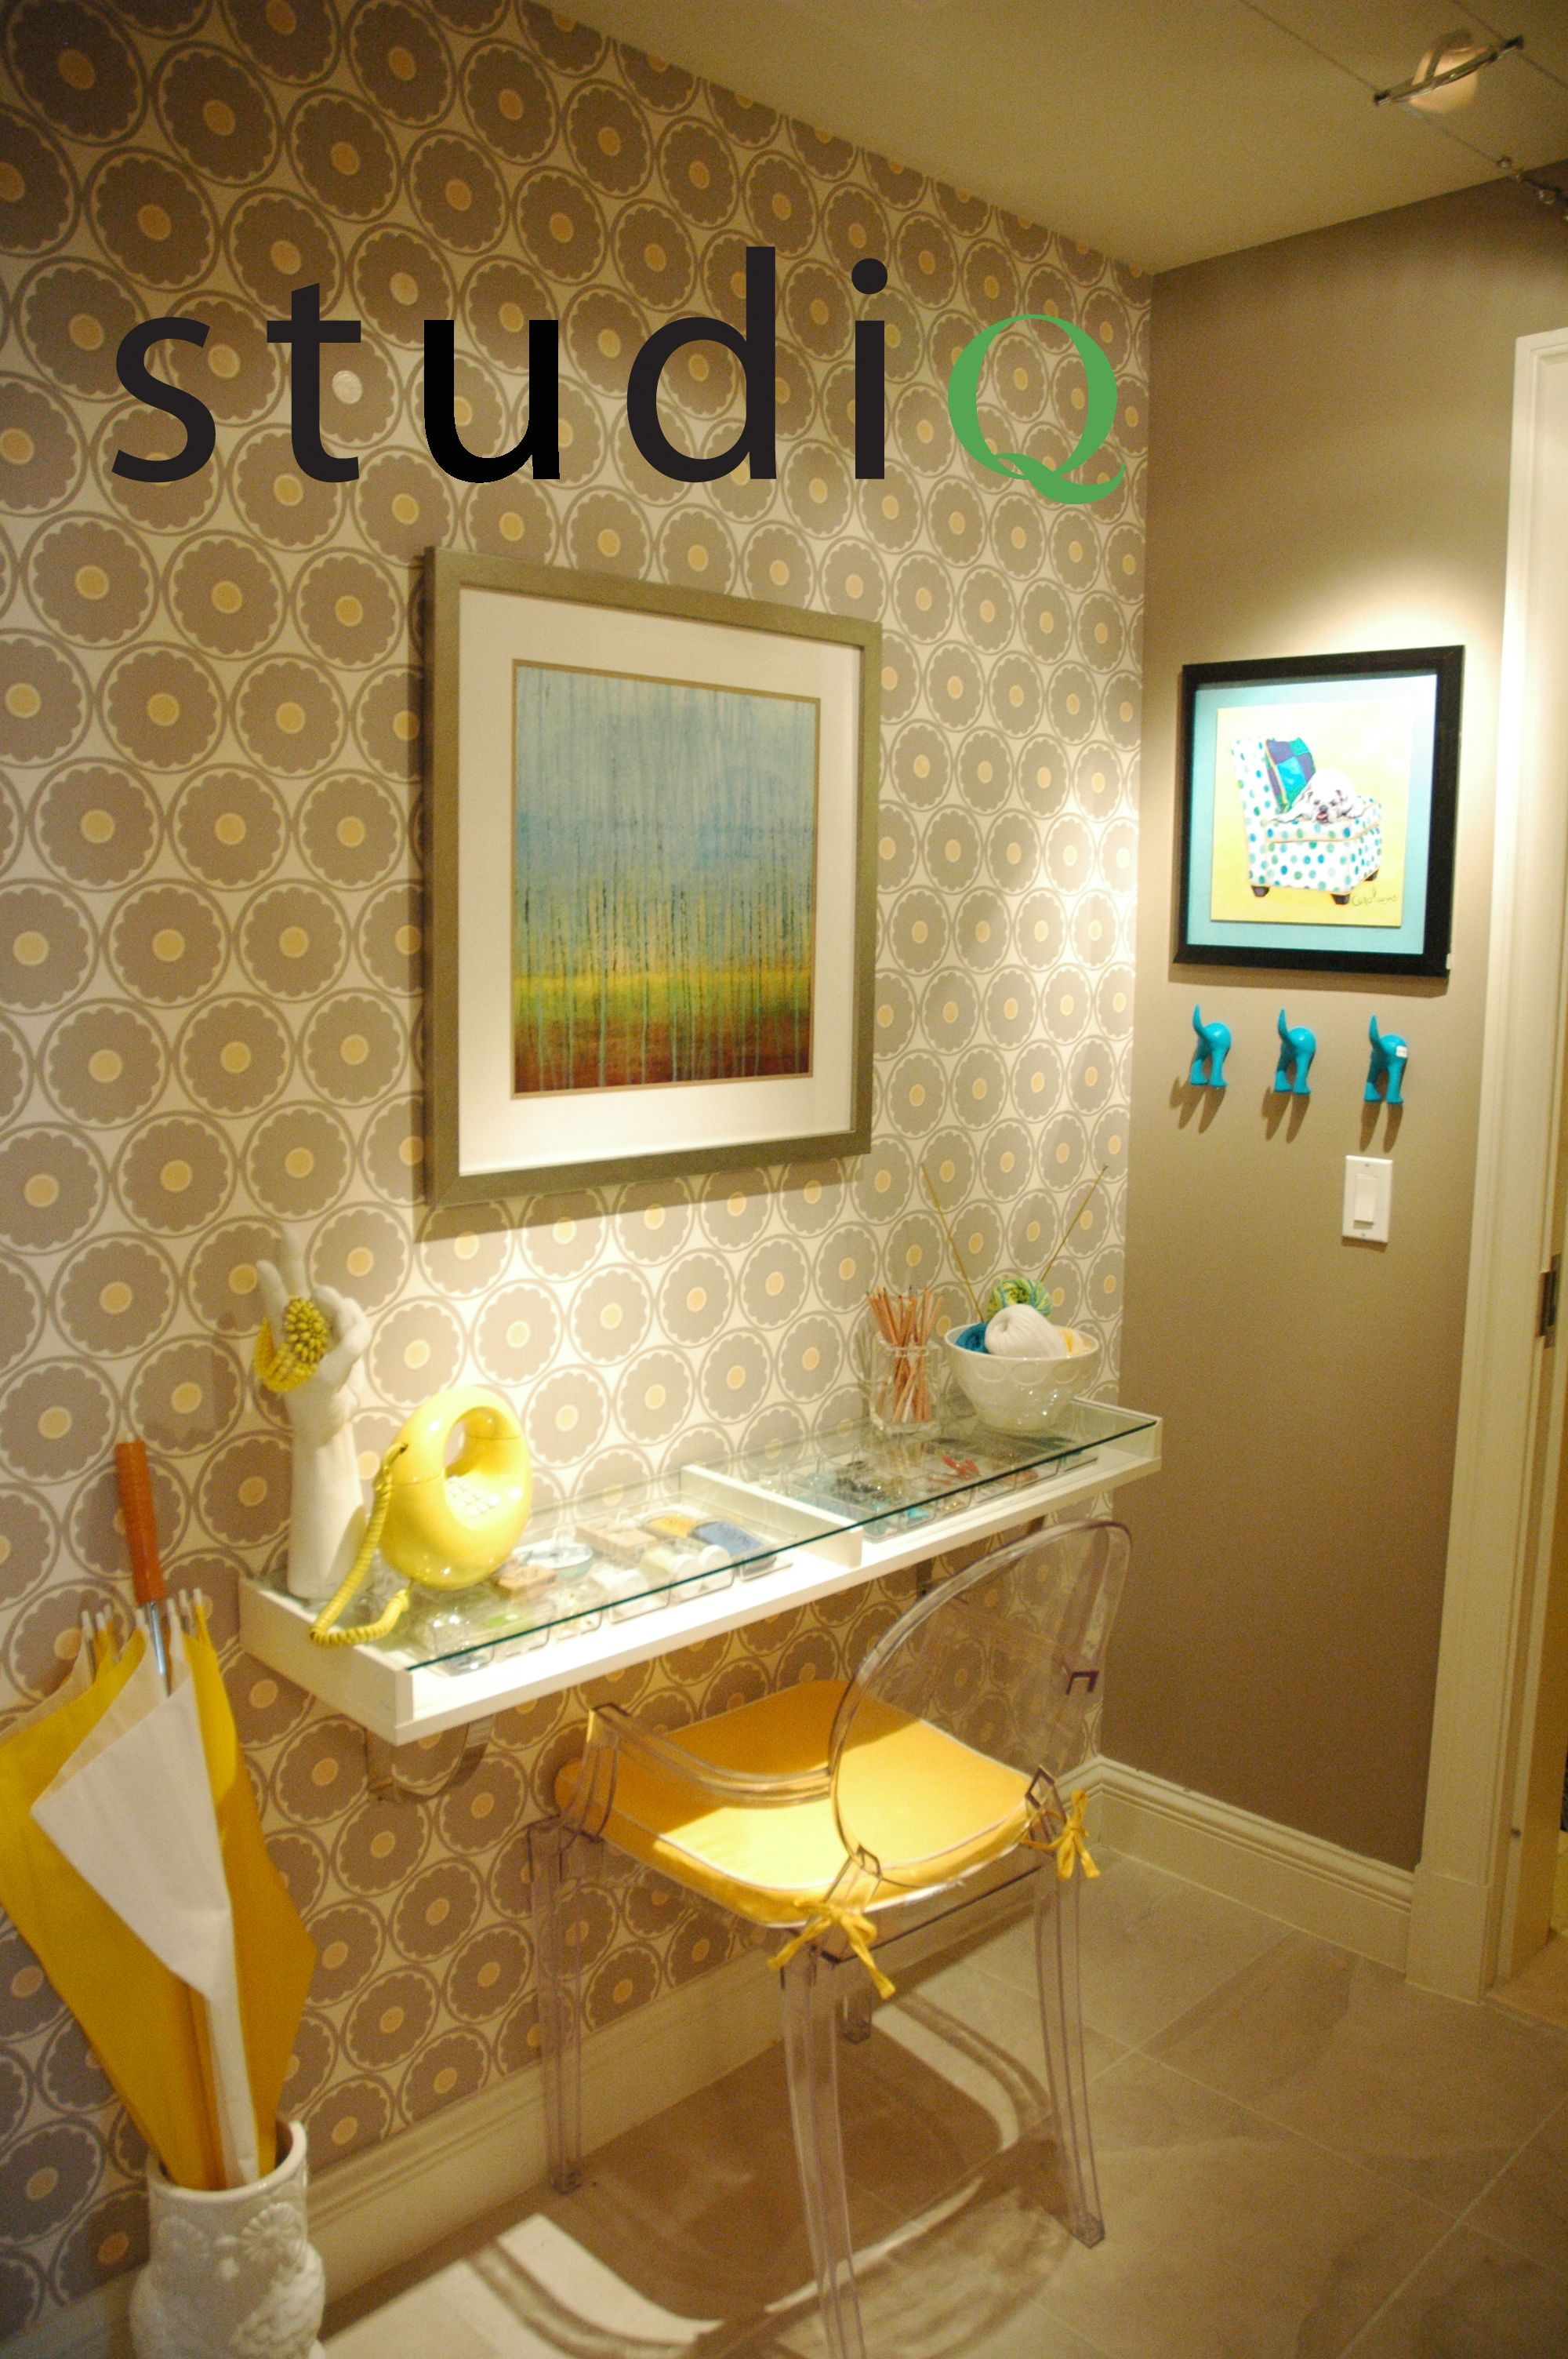 This room was inspired by the retro wallpaper. The color scheme developed  into a playful